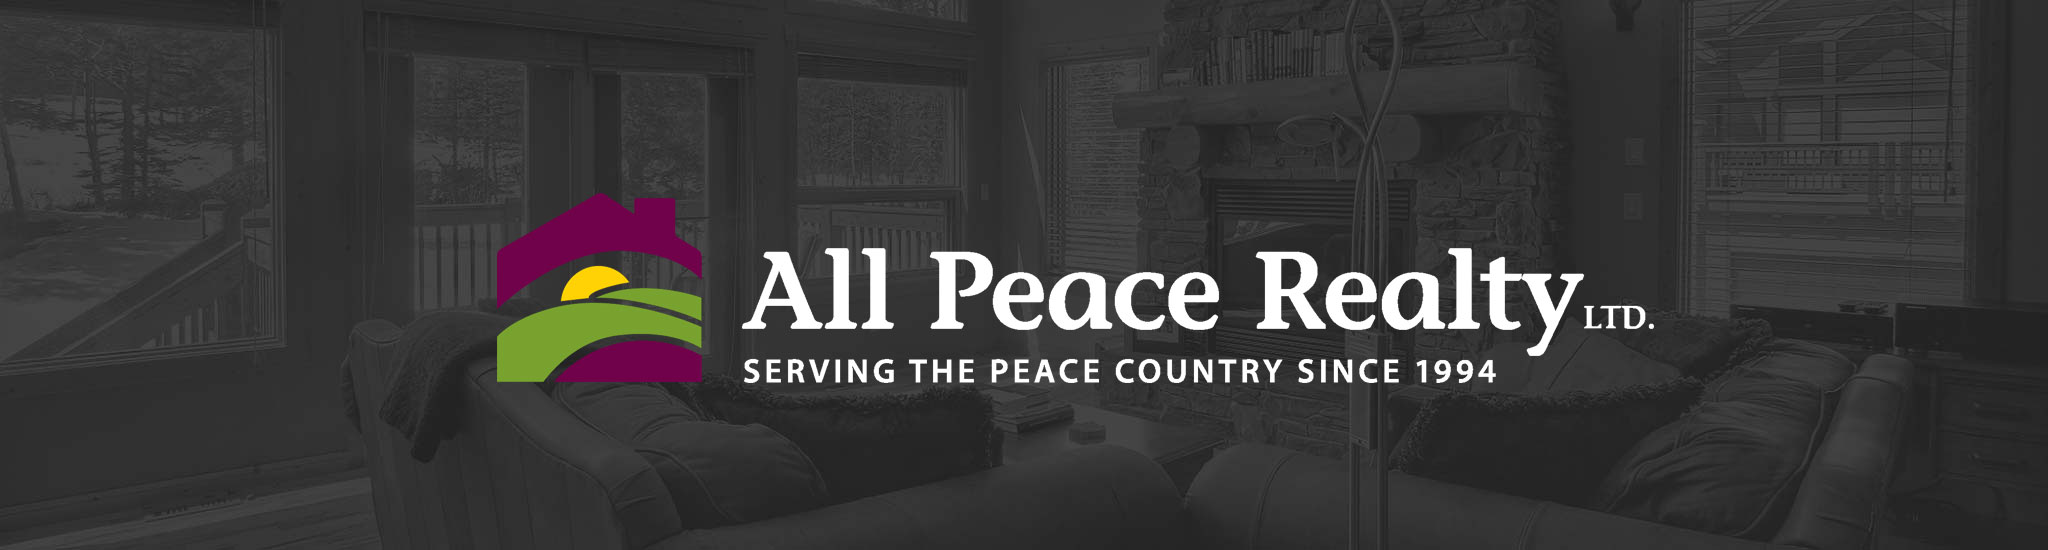 web design for All Peace Realty in Beaverlodge